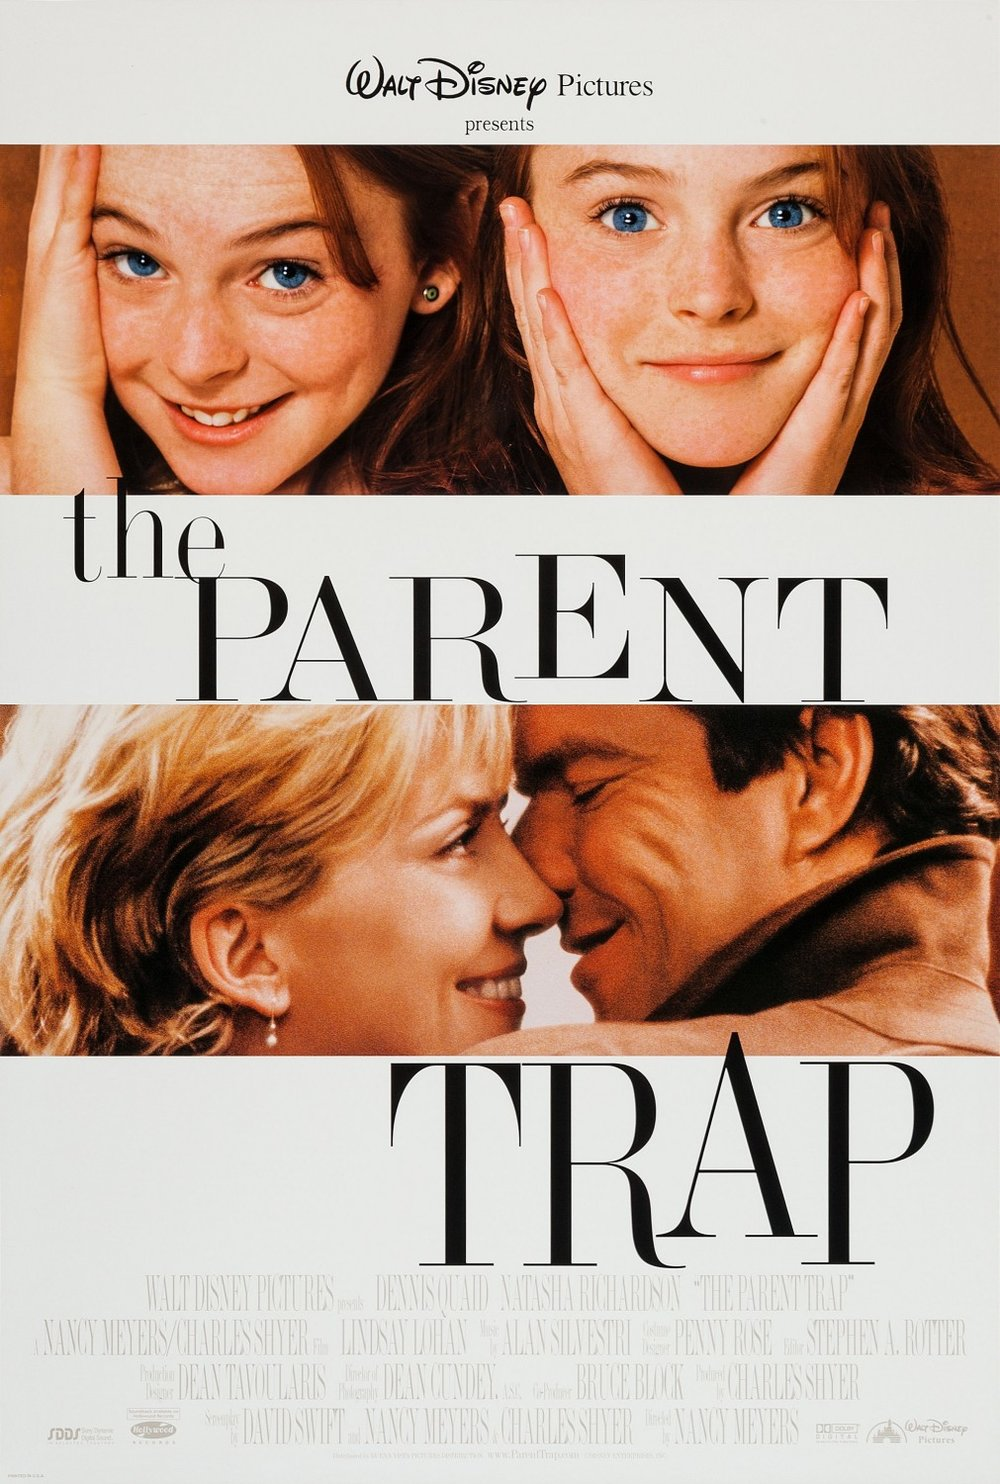 the parent trap.jpg